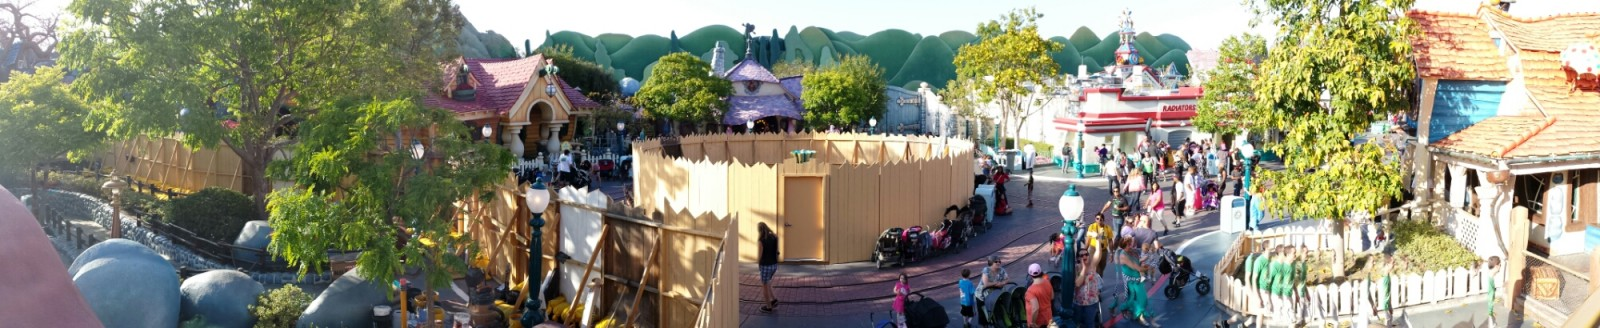 A panoramic pic from the Miss Daisy in #Toontown #Disneyland